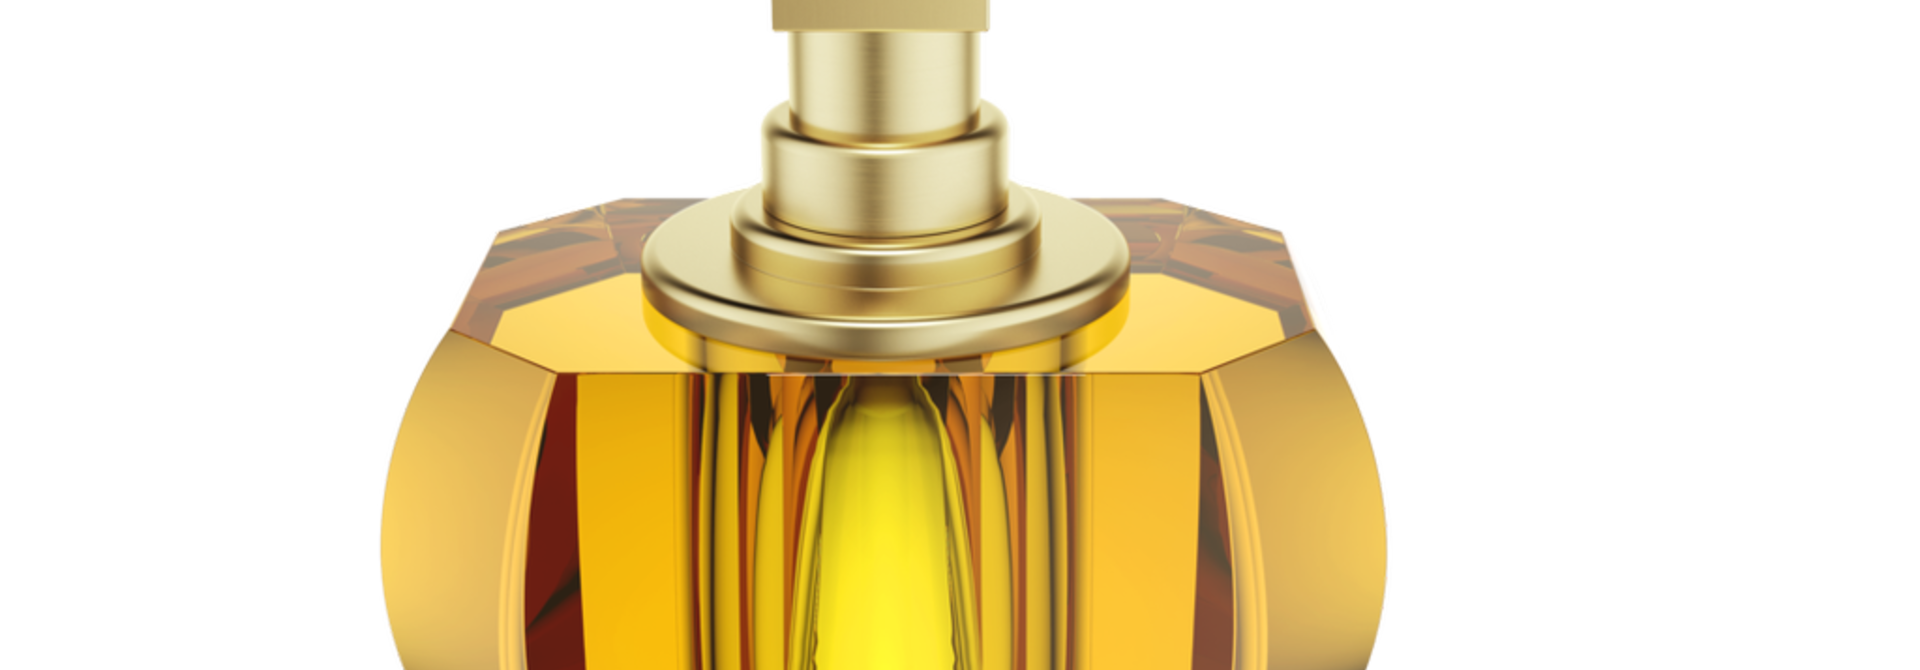 DECOR WALTHER - Crystal / Amber Soap Dispenser